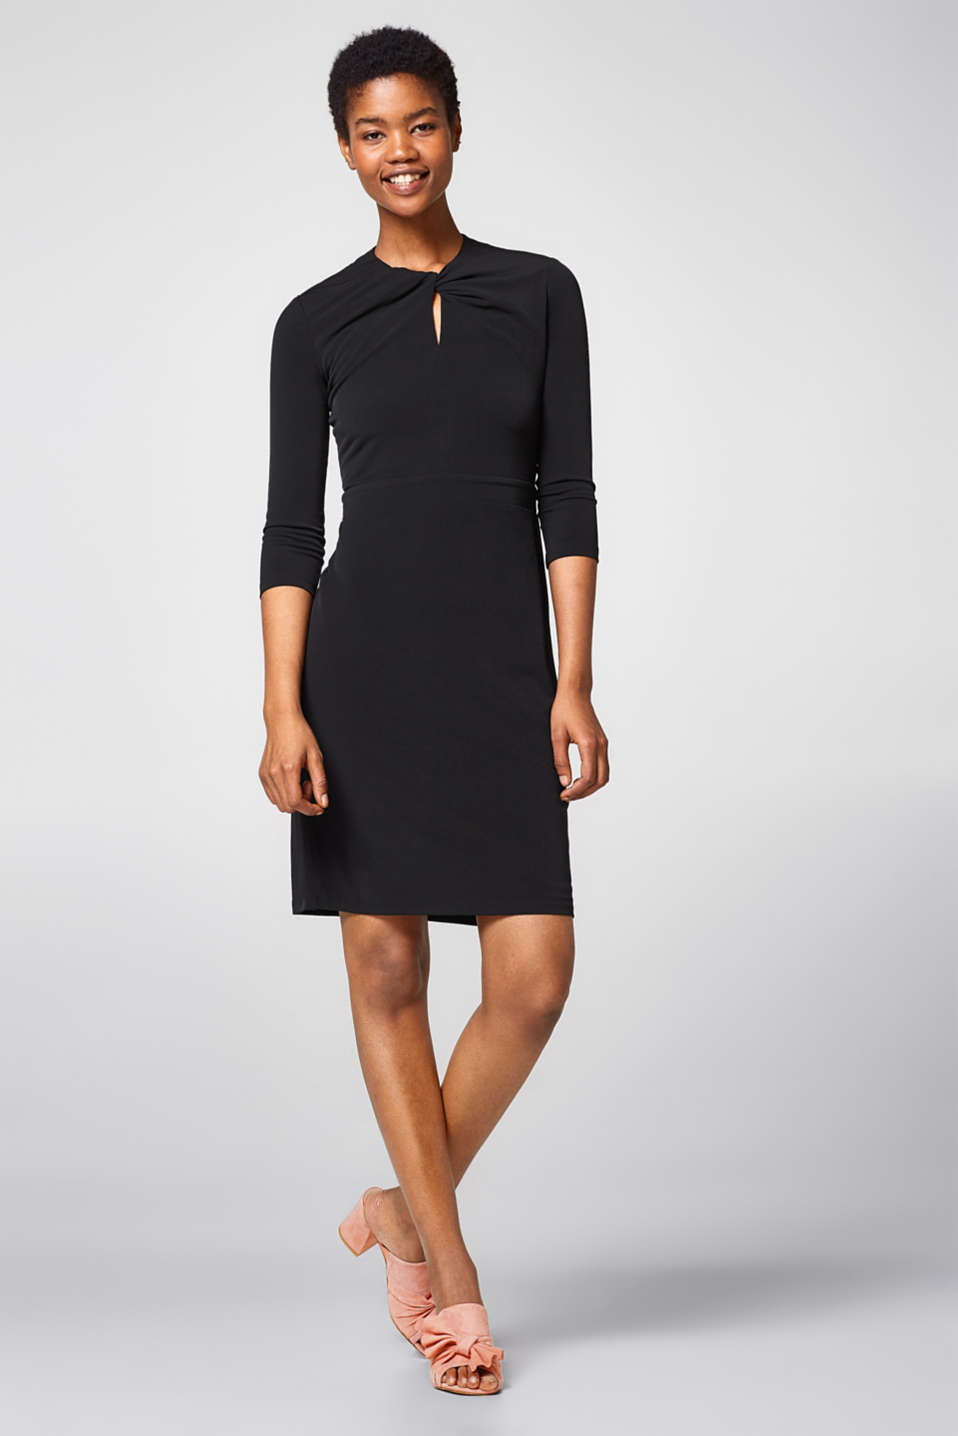 Draped-effect stretch jersey dress